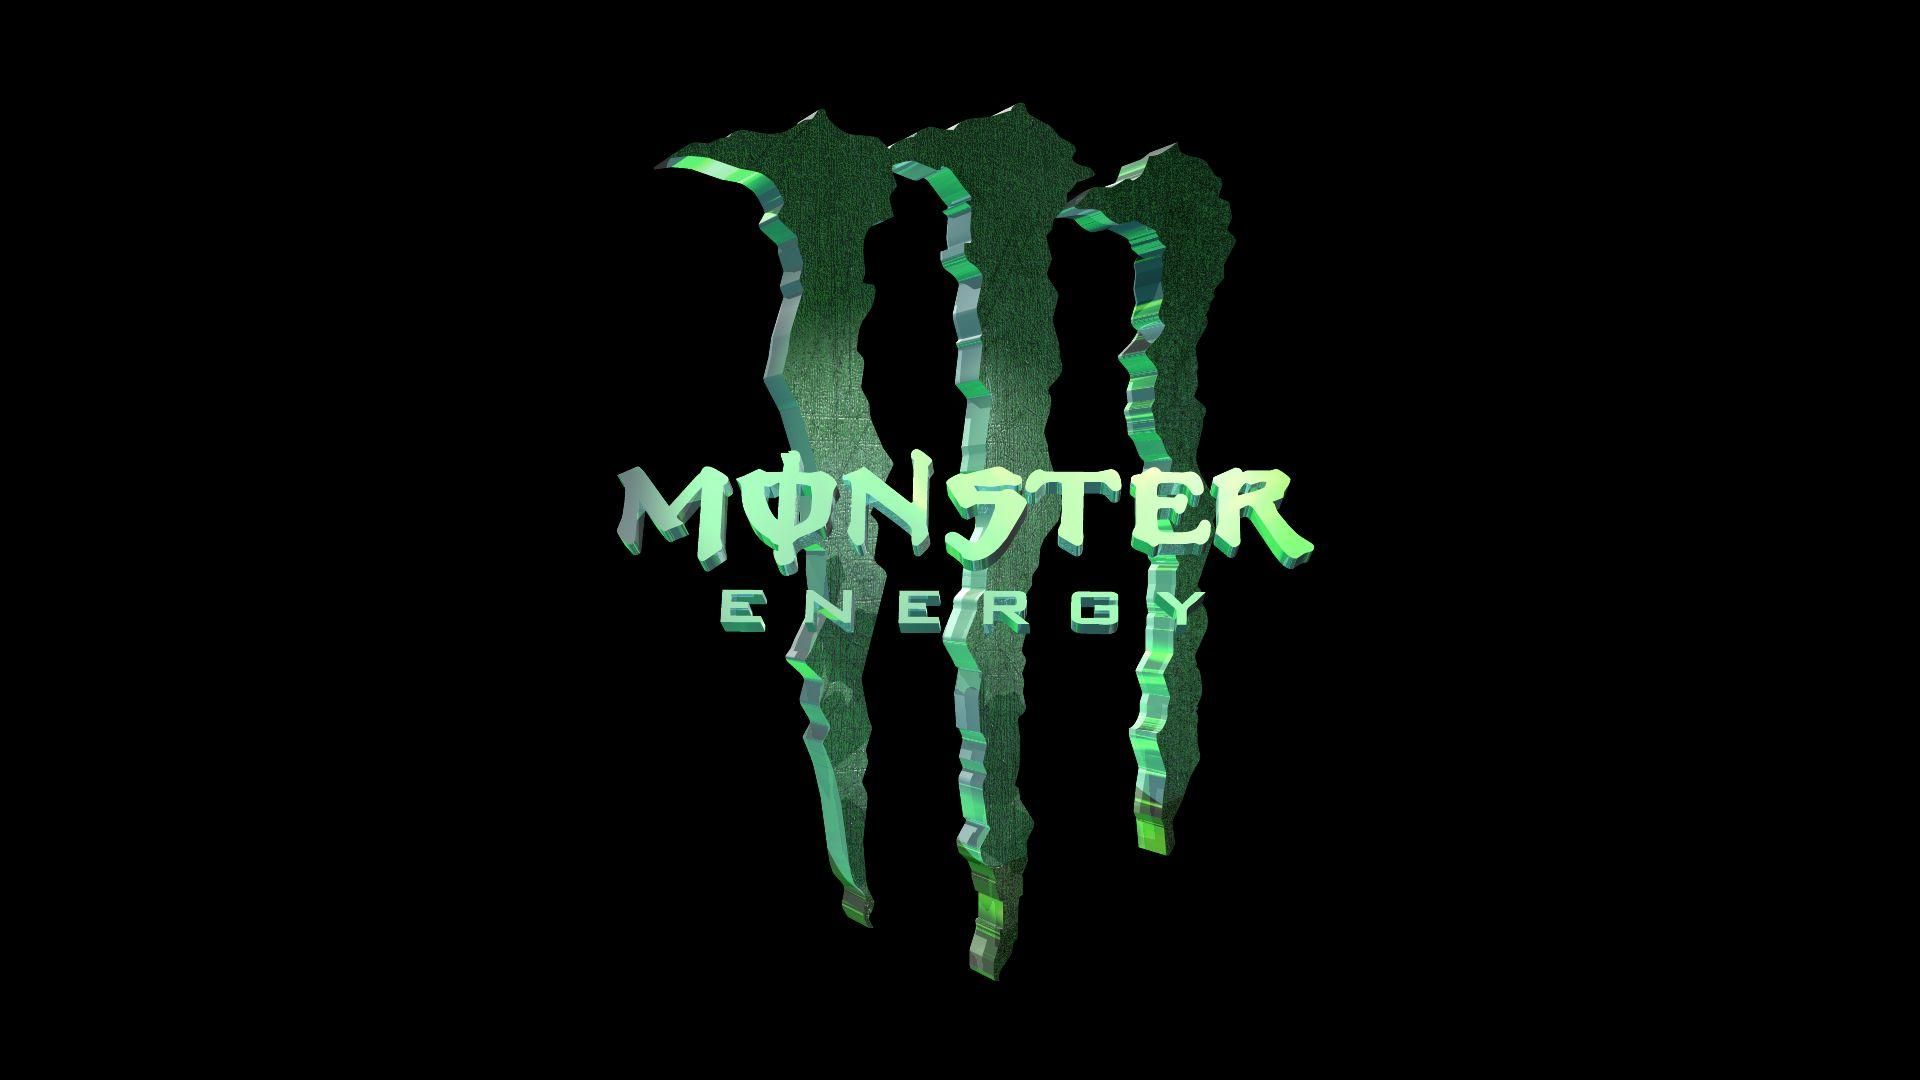 Imagenes de monster